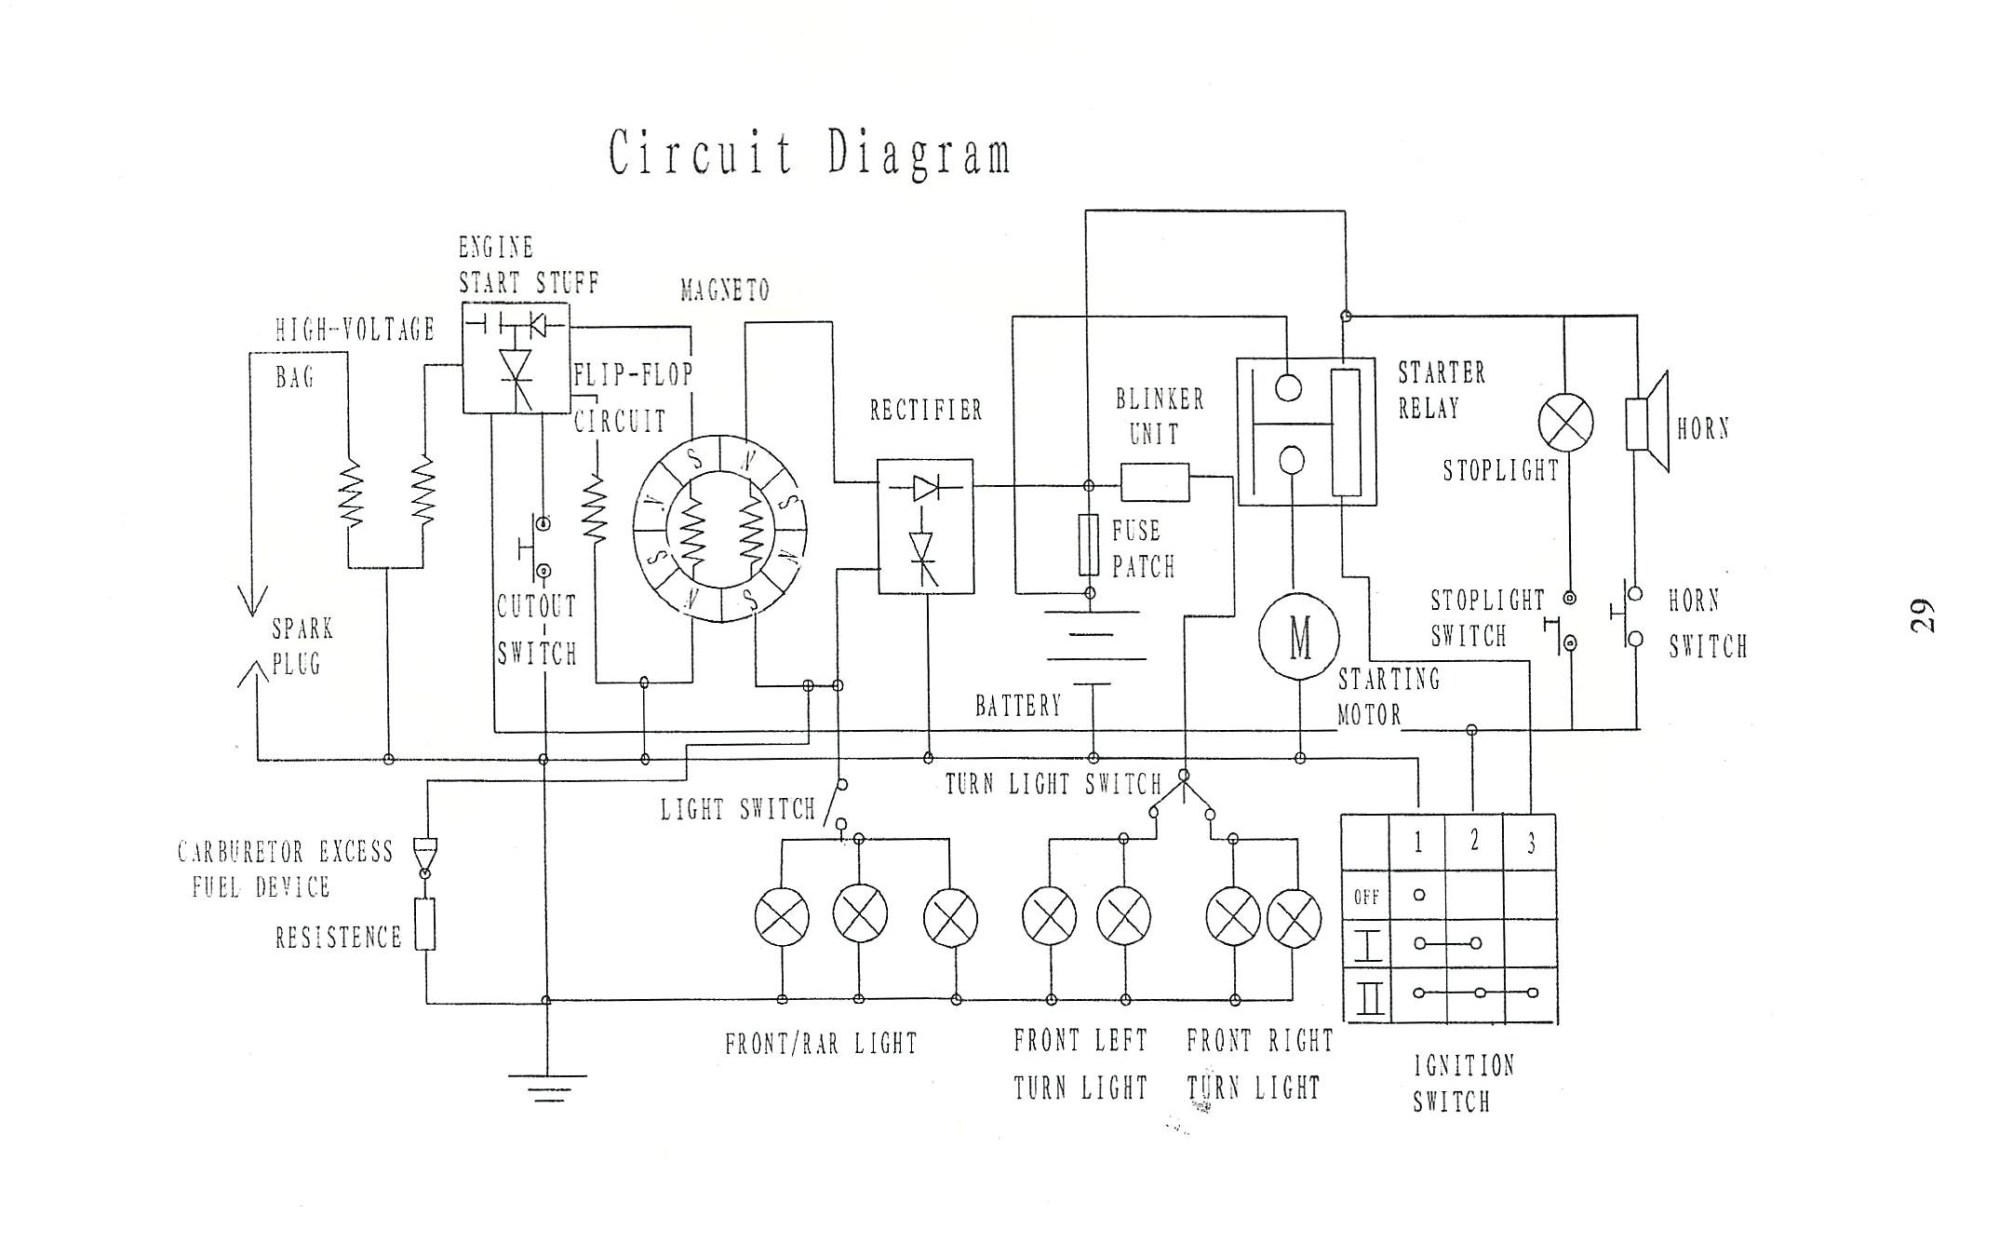 hight resolution of kandi atv 250cc wiring diagram wiring diagram centre kandi atv 250cc wiring diagram